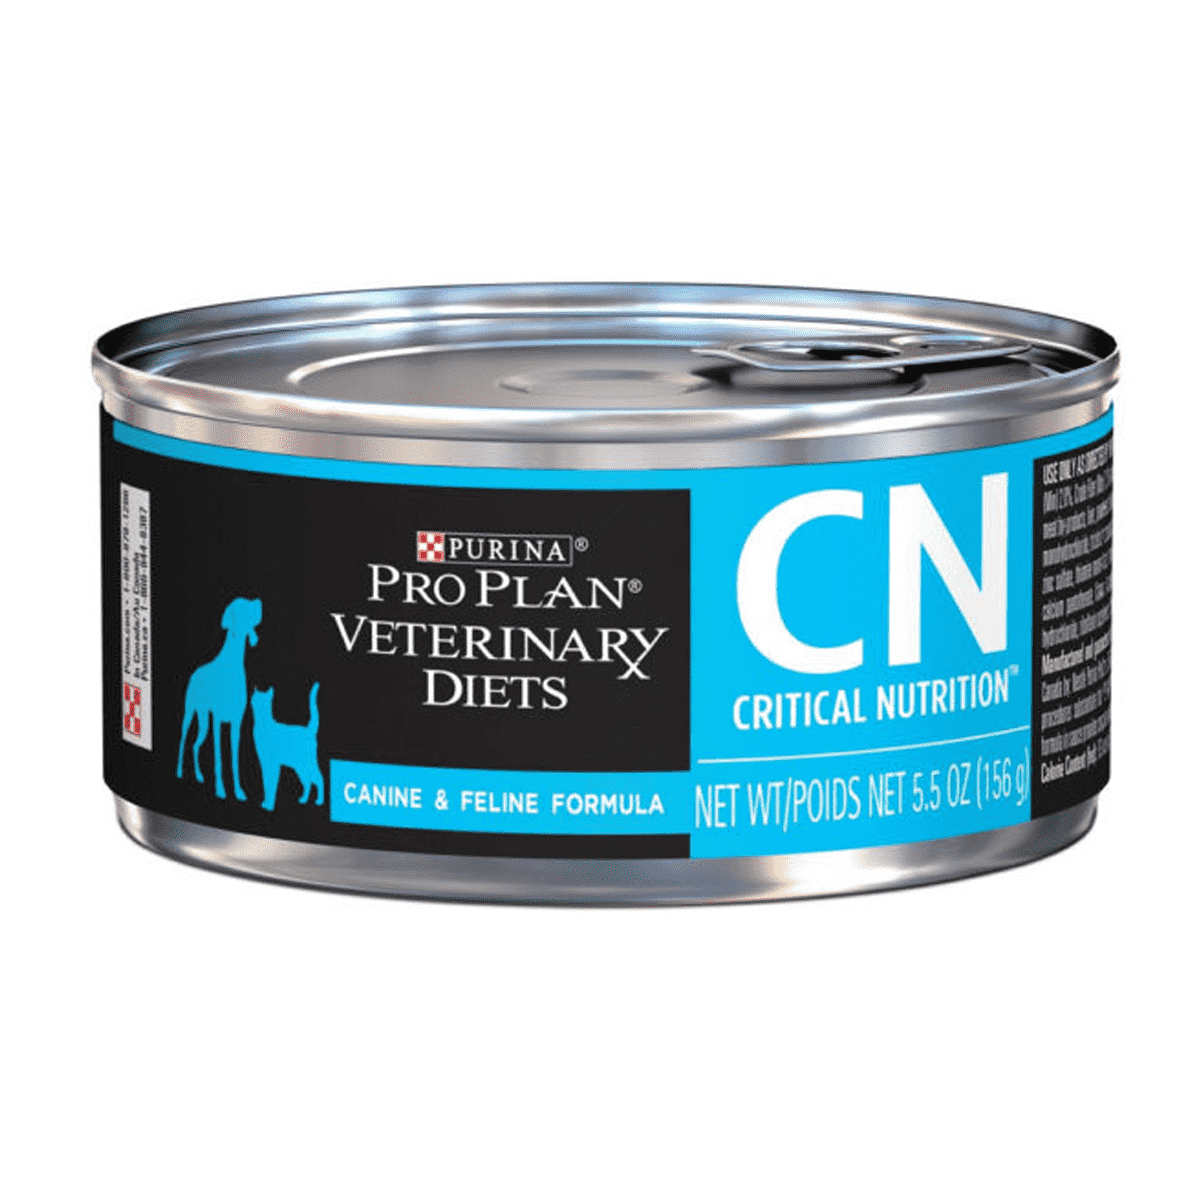 Alimento Pro Plan Veterinary Diets CN Critical Nutrition 156g